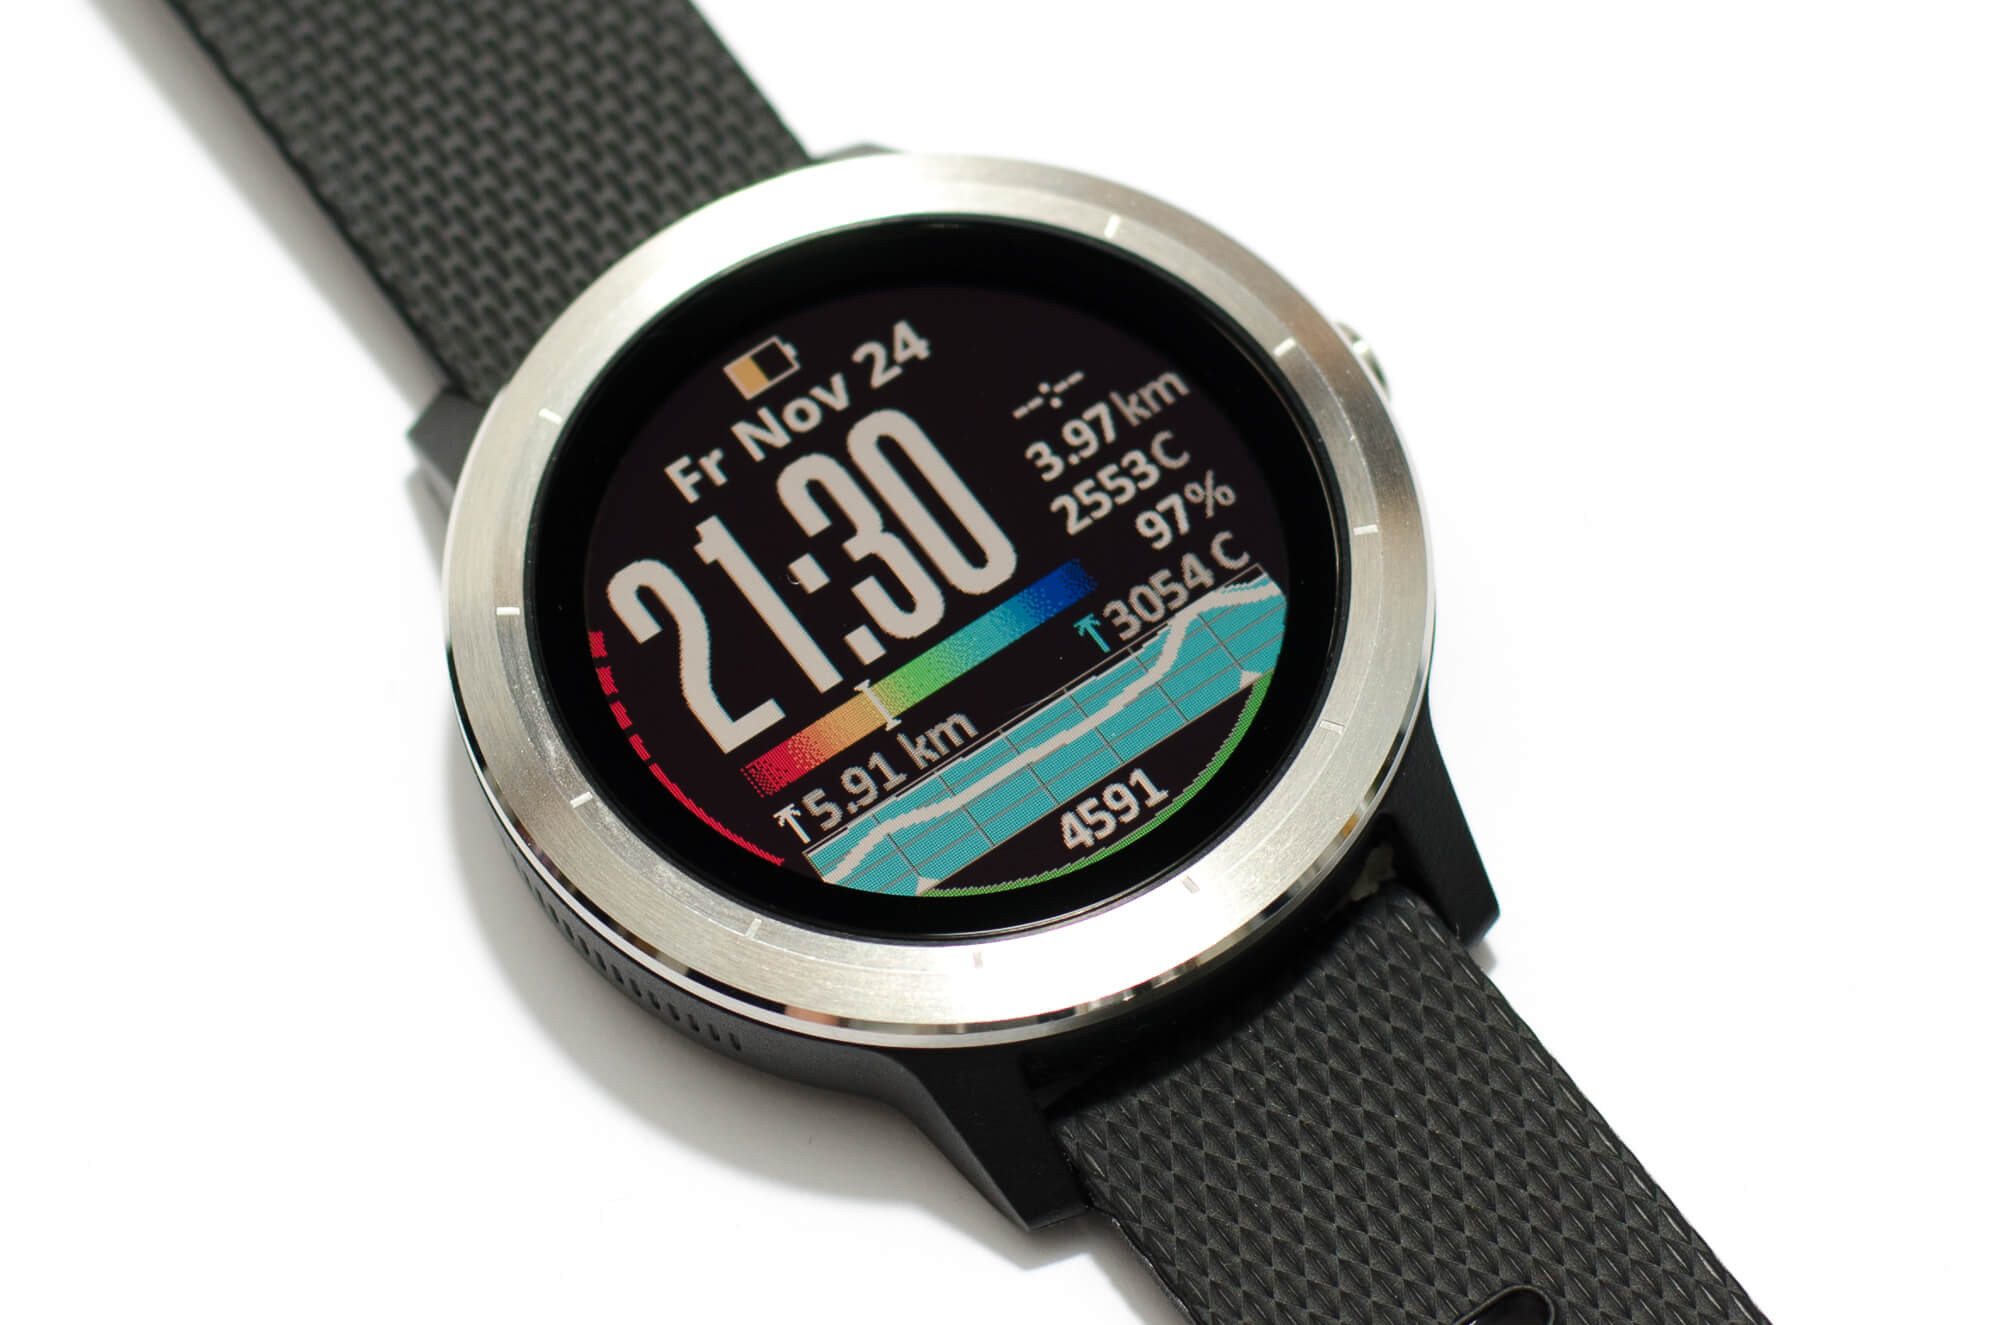 Garmin vivoactive 3 - Transflektives Display